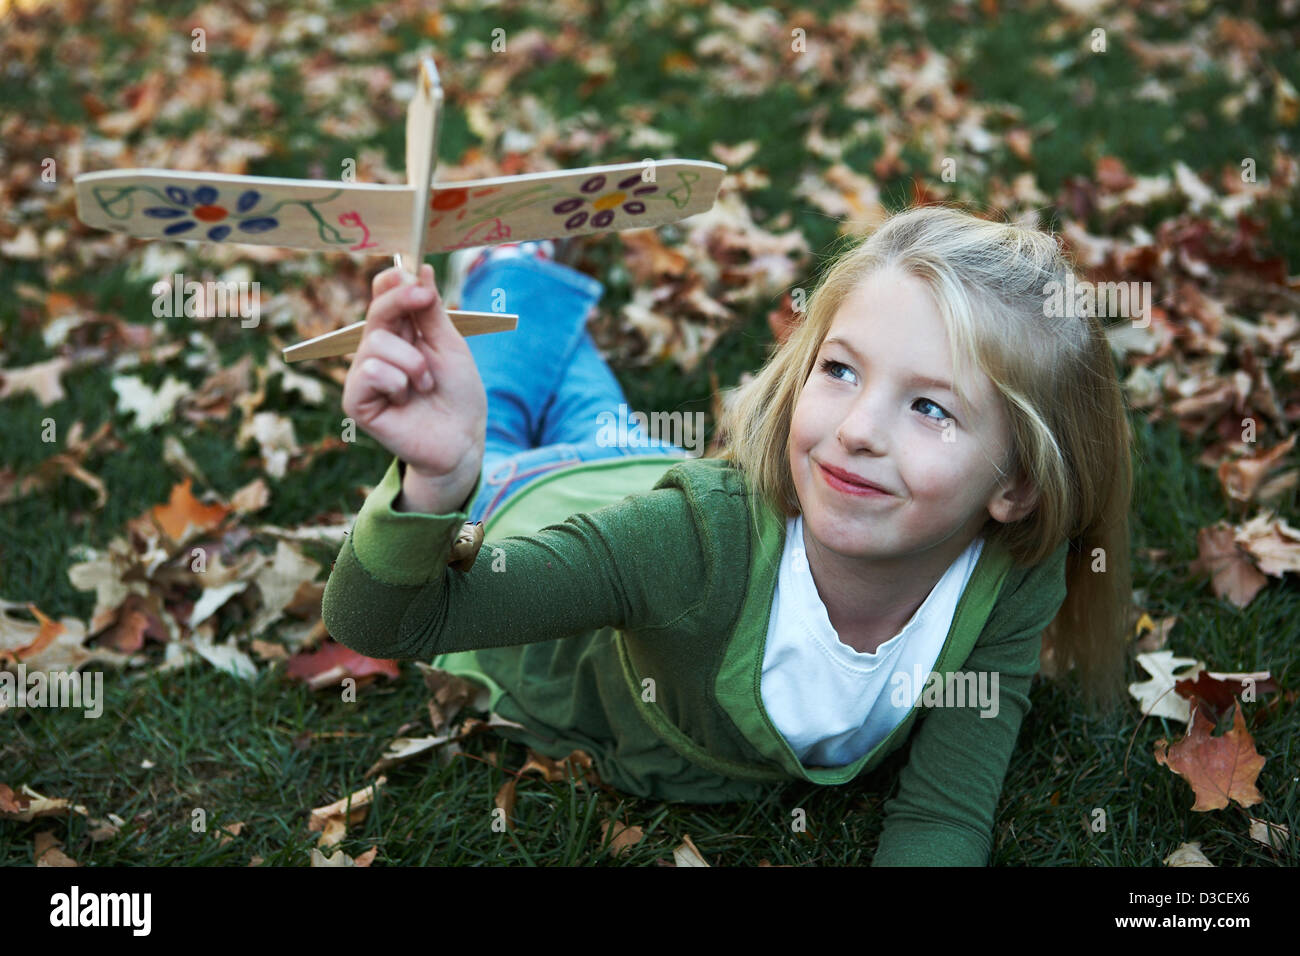 Eight year old girl playing with hand decorated toy glider plane. - Stock Image